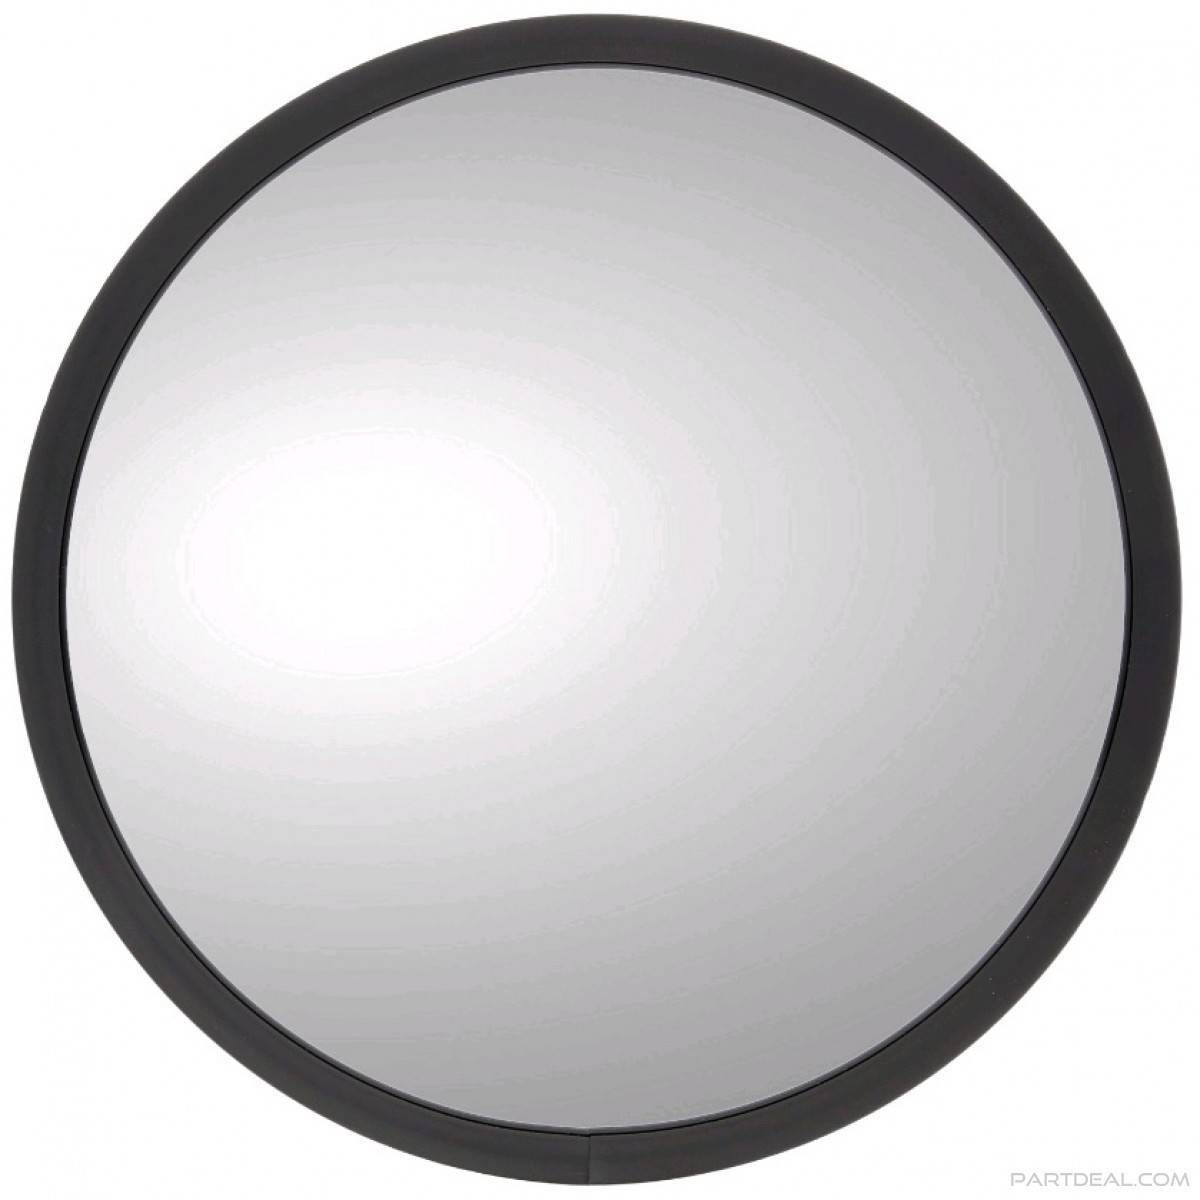 Truck-Lite-Truck-Lite 8 In. Stainless Steel Metal Round Convex regarding Round Convex Mirrors (Image 24 of 25)